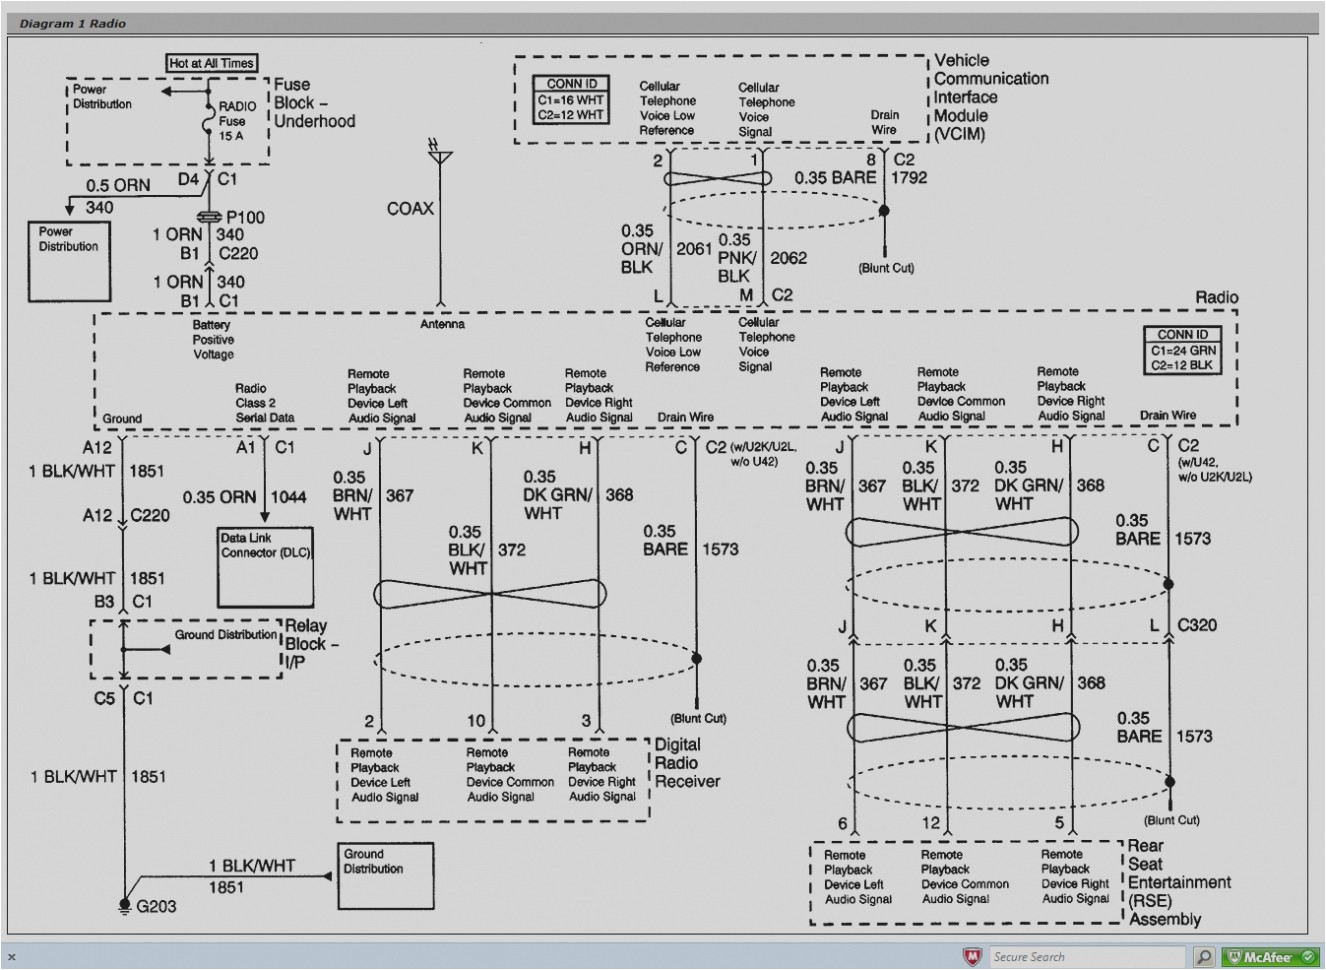 inspirational 1990 gmc suburban radio wiring diagram chevy truck wire harness for 2014 manual 1995 sierra in 1995 gmc sierra wiring diagram png